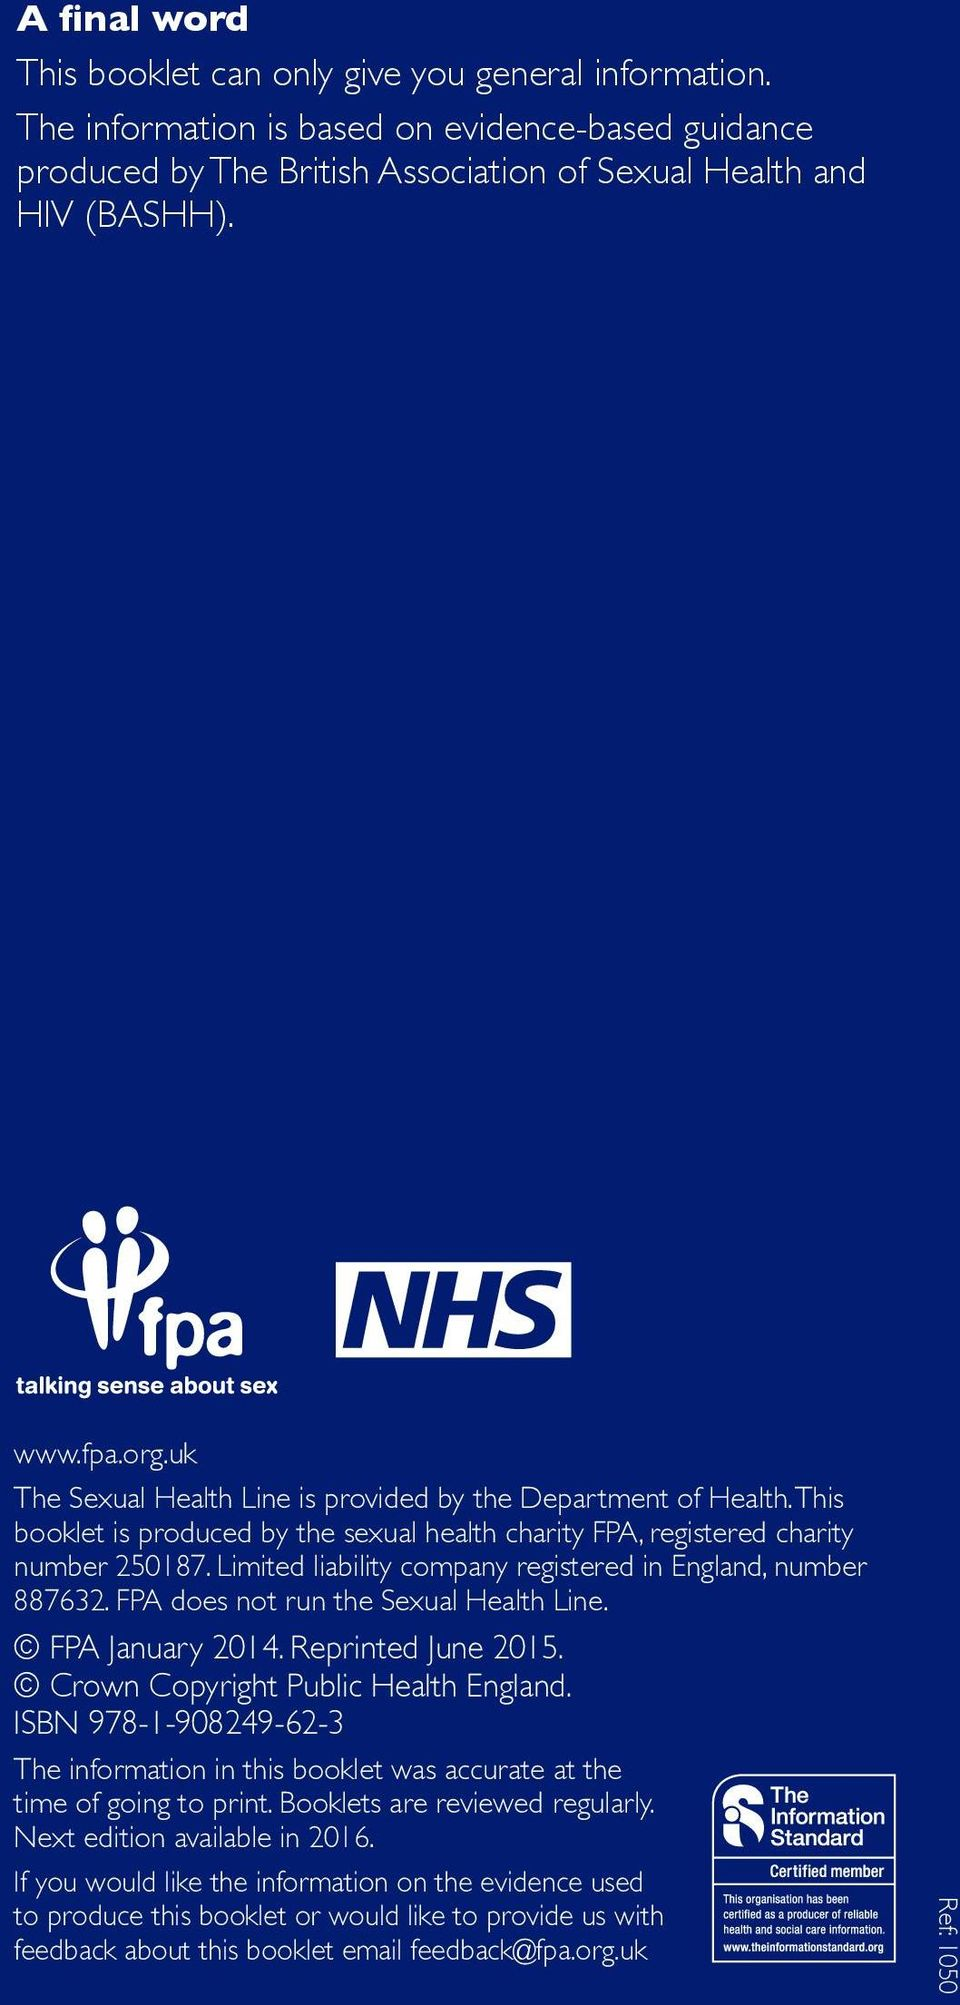 Limited liability company registered in England, number 887632. FPA does not run the Sexual Health Line. FPA January 2014. Reprinted June 2015. Crown Copyright Public Health England.